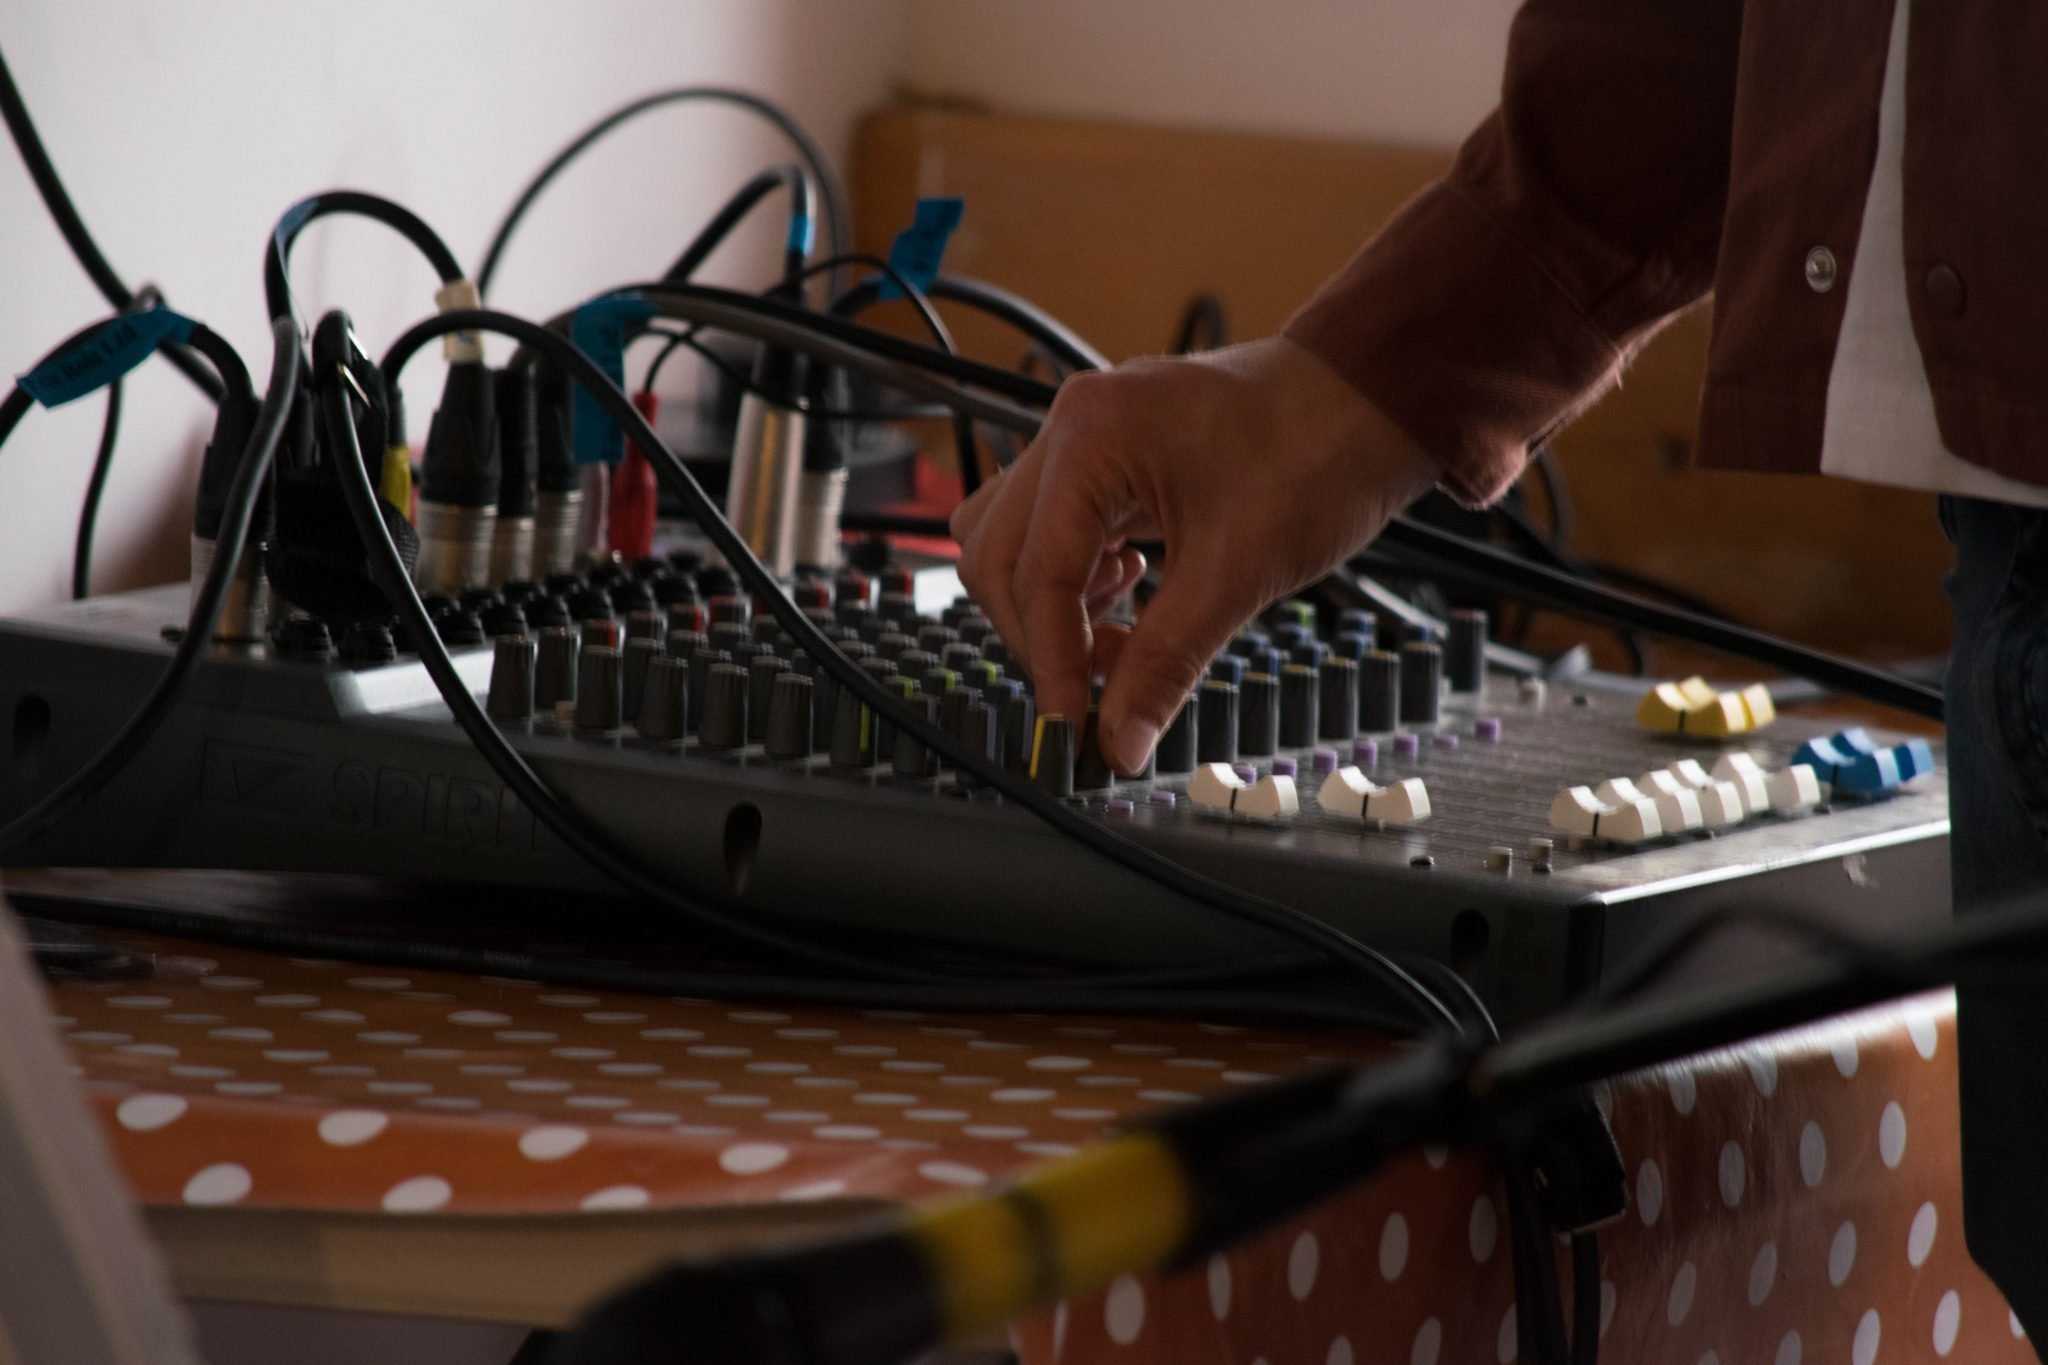 A mixing desk is being shown in a demonstration of live sound